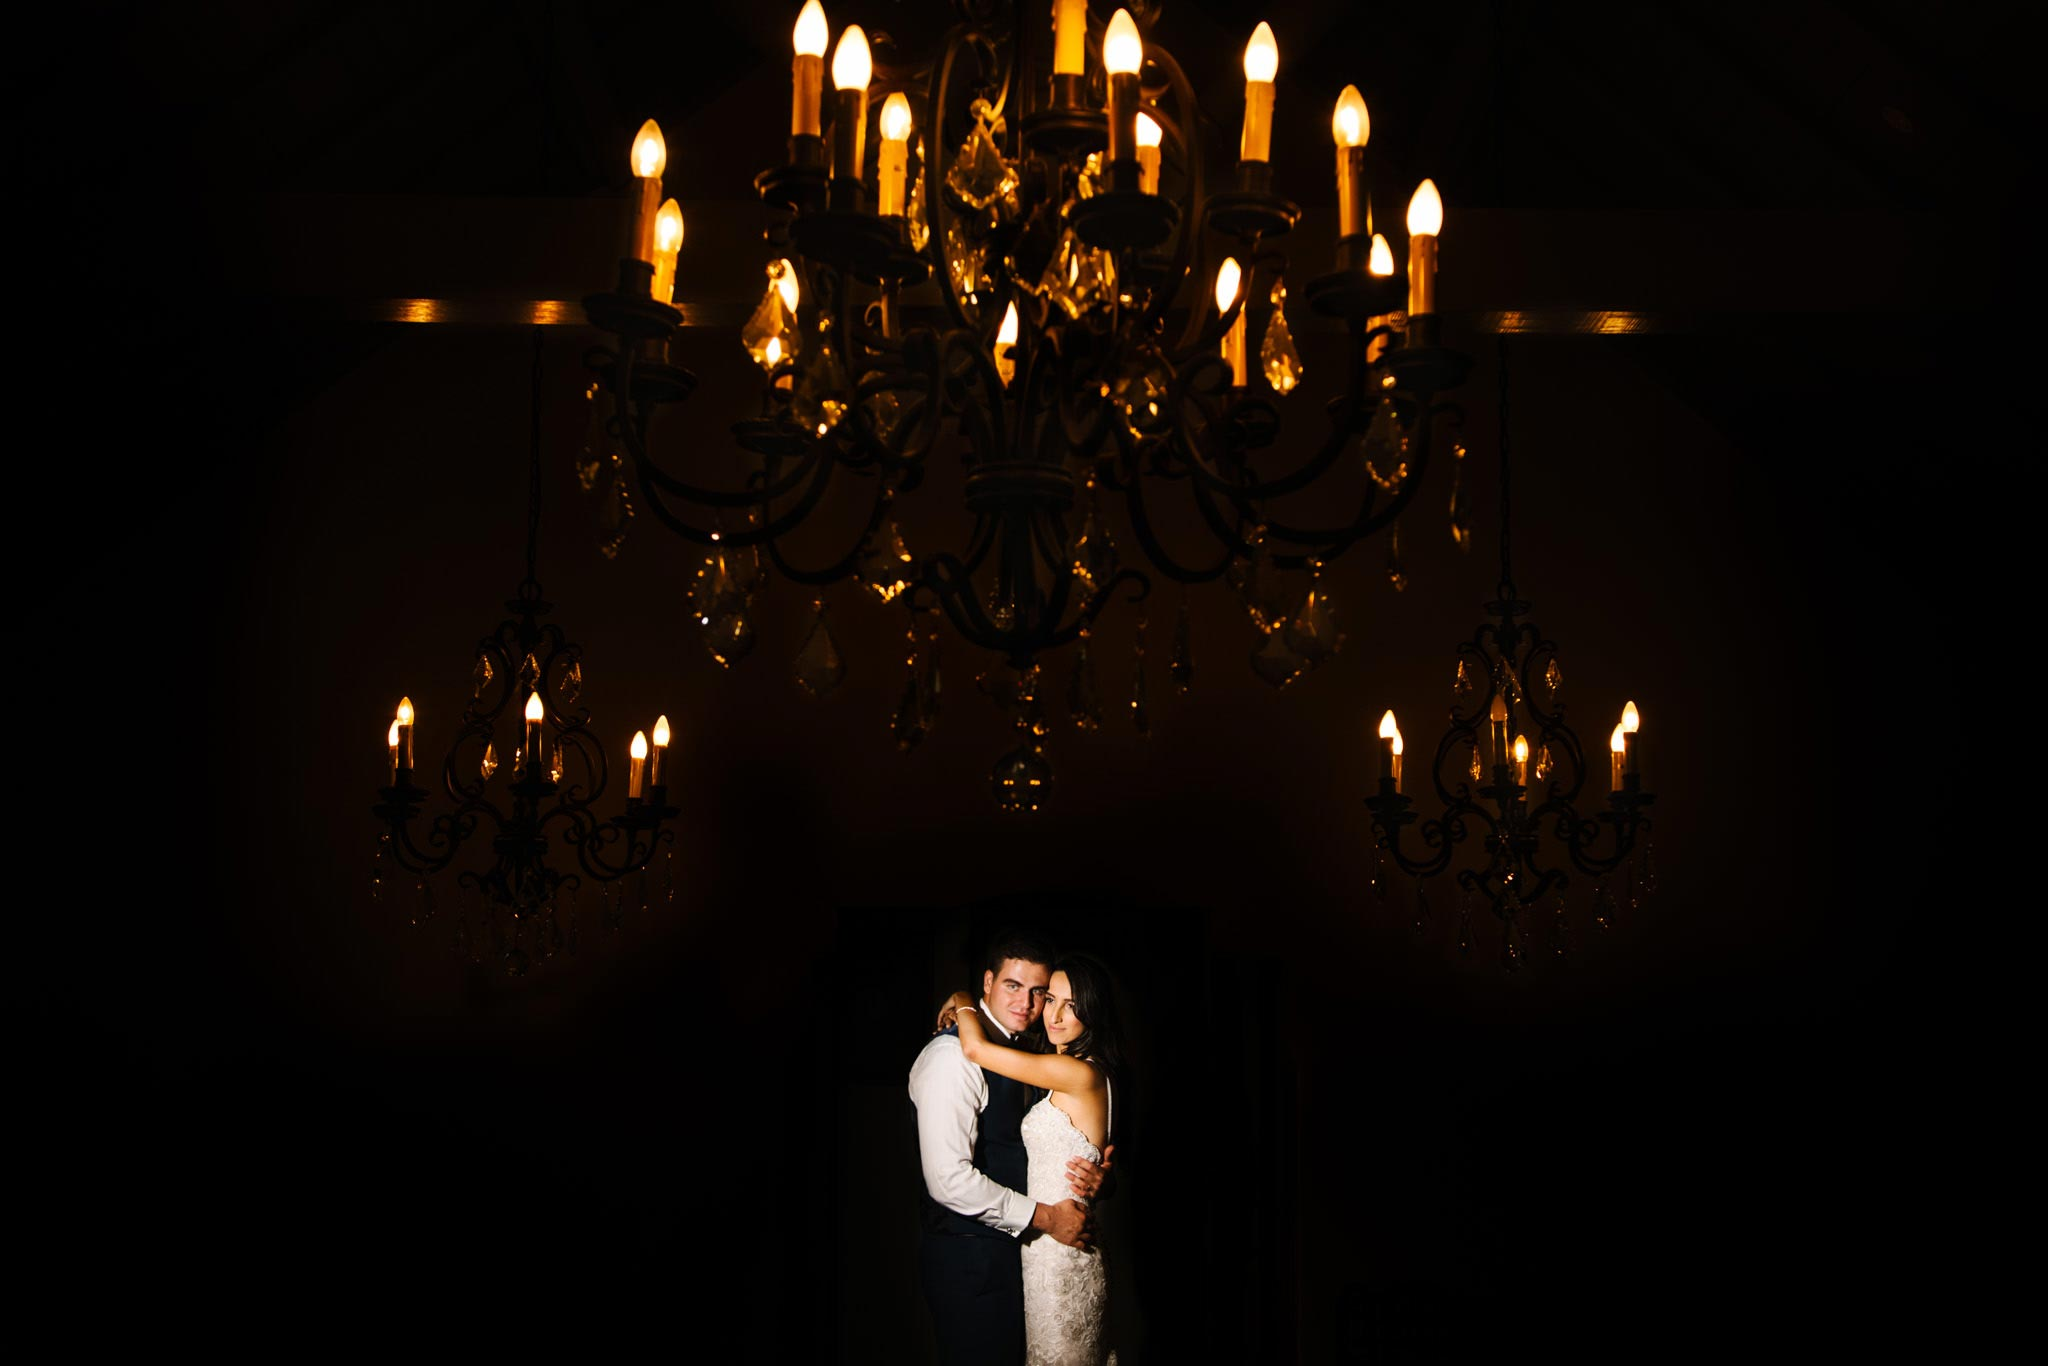 Bride and groom embrace under chandeliers at Manly Golf Club wedding reception